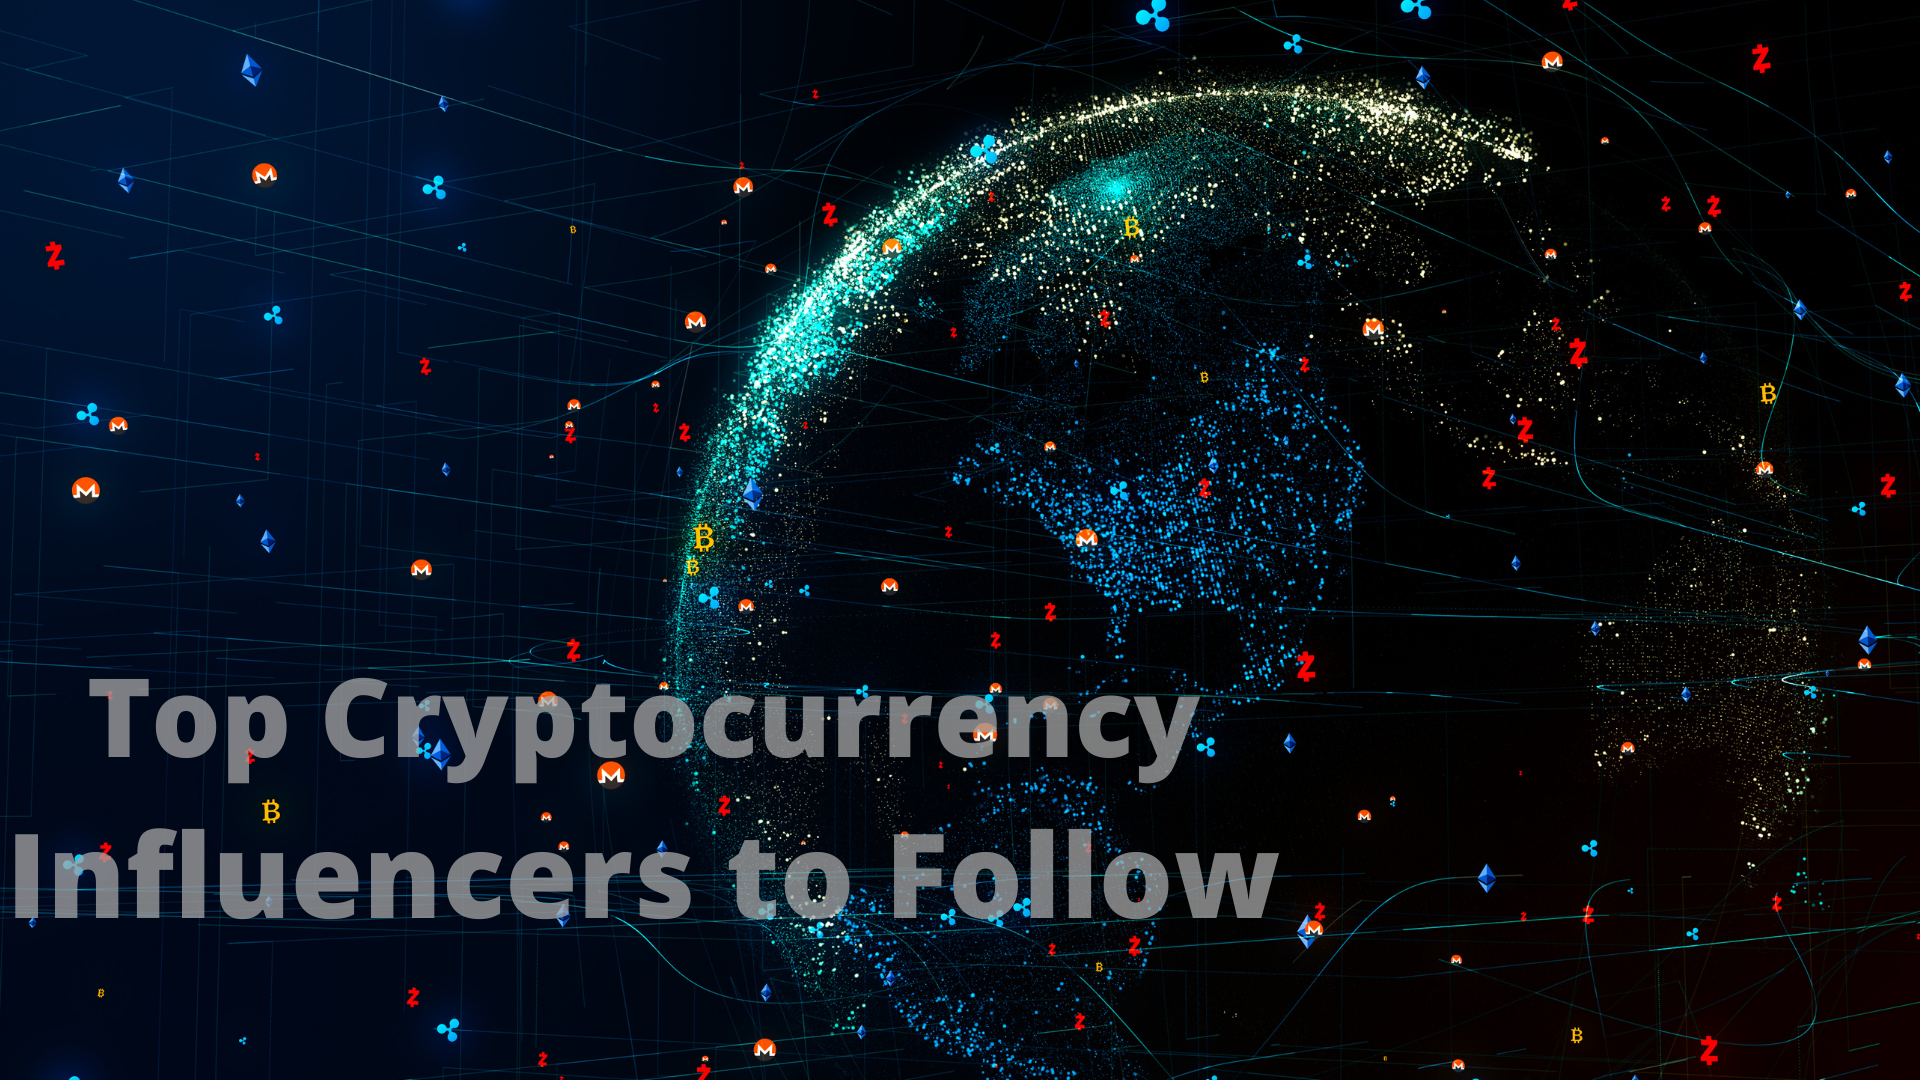 Top Cryptocurrency Influencers to Follow